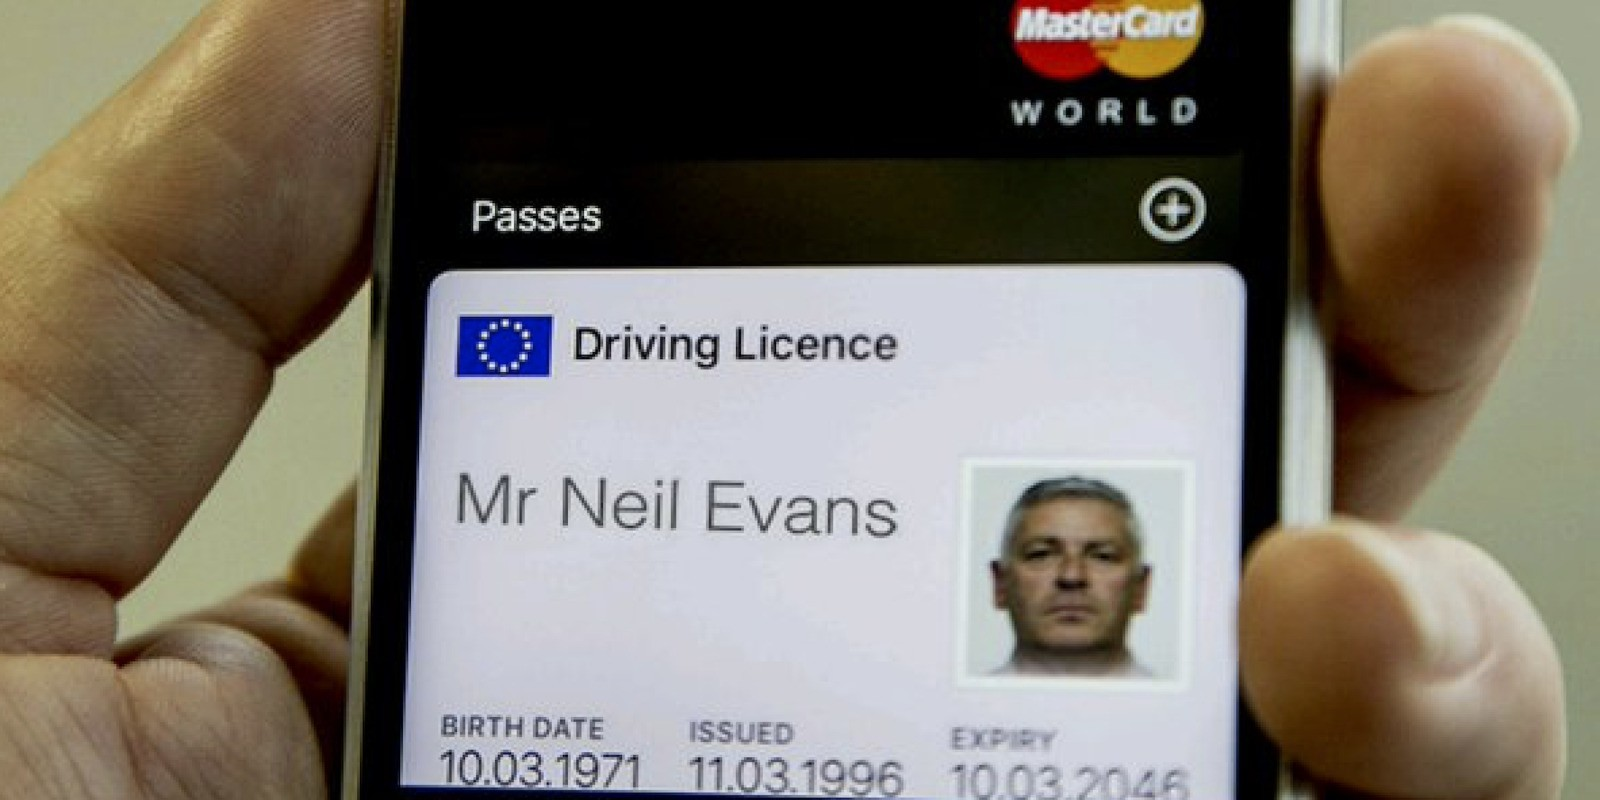 UK shows off prototype of digital iPhone driving license using Apple's Wallet app